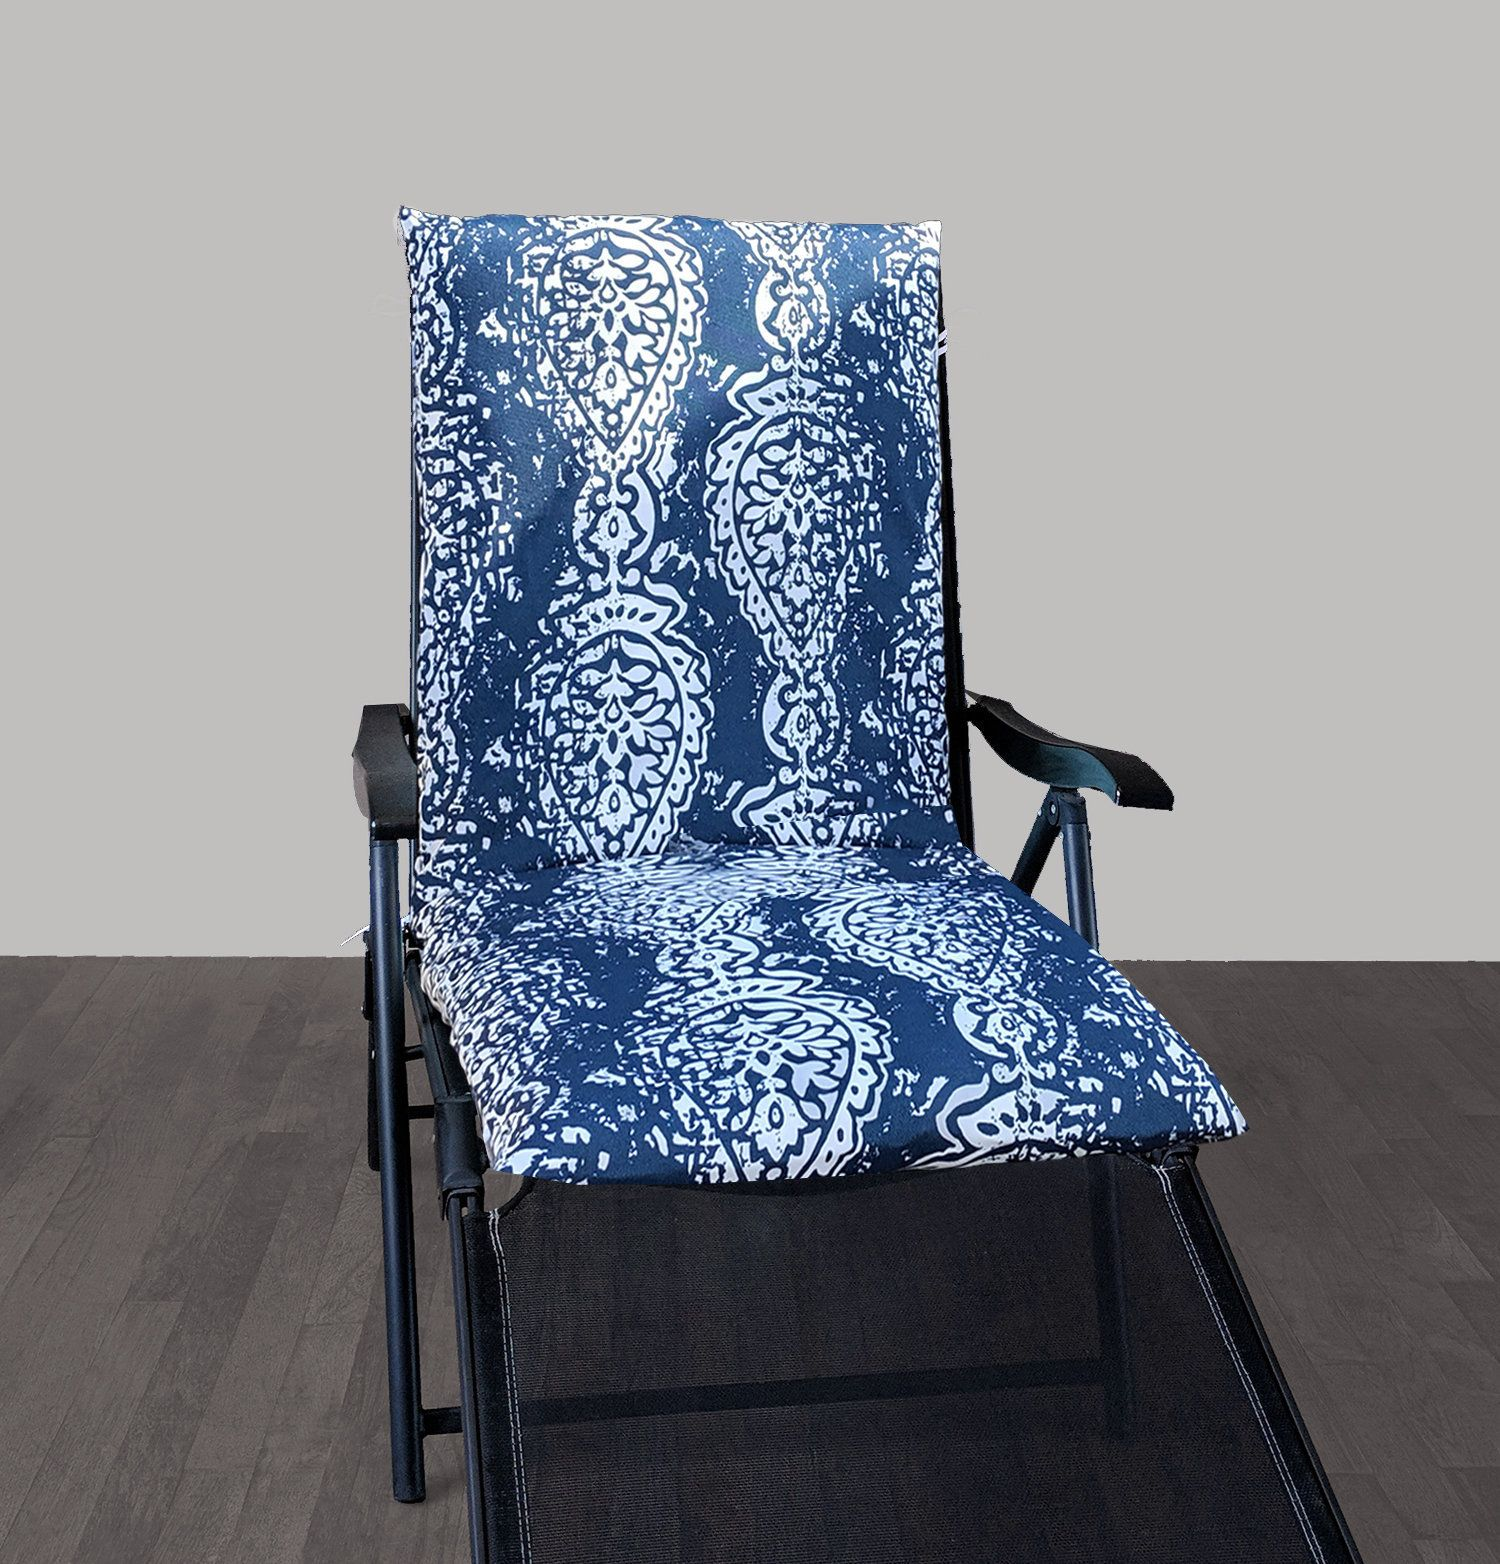 Ikea back seat pad cover navy blue outdoor ikat print